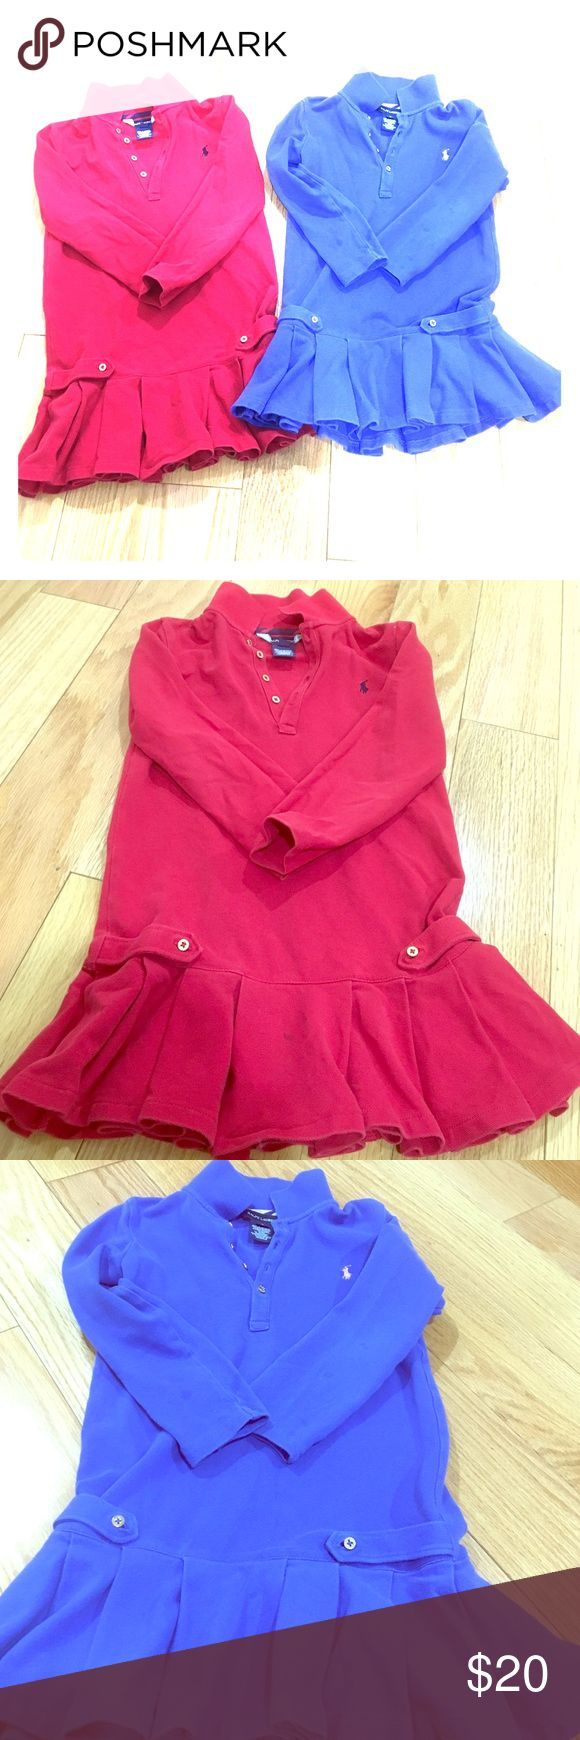 ❤️️💙 2 Ralph Lauren Little Girl's Pleated Dresses Bundle of 2 little girls collared Polo Ralph Lauren long-sleeved pleated dresses. Will sell separately! Red is size 6X with a black pony, gold monogrammed buttons, has stain on front pleat. Blue is size 6 with a white pony, gold monogrammed buttons, has stains on both arms. I tried to capture the stains in the pictures, but they are somewhat faint. Adorable dresses! Smoke/pet free. Polo by Ralph Lauren Dresses Casual